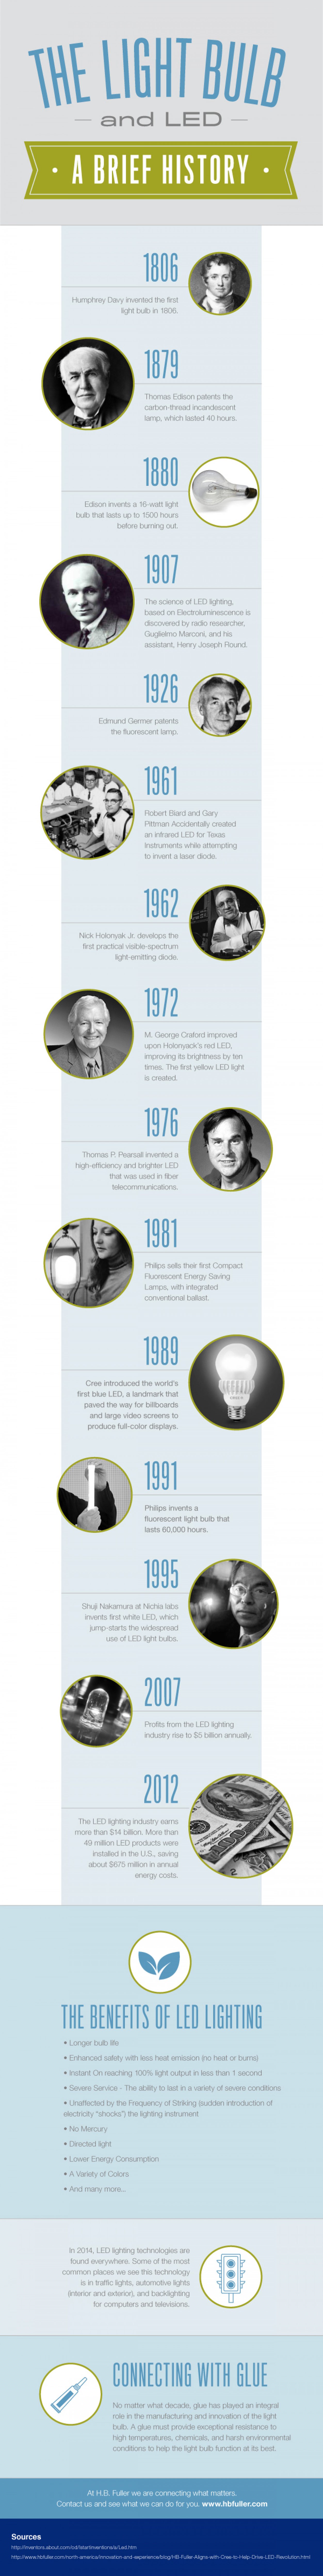 The Light Bulb and LED, A Brief History  Infographic